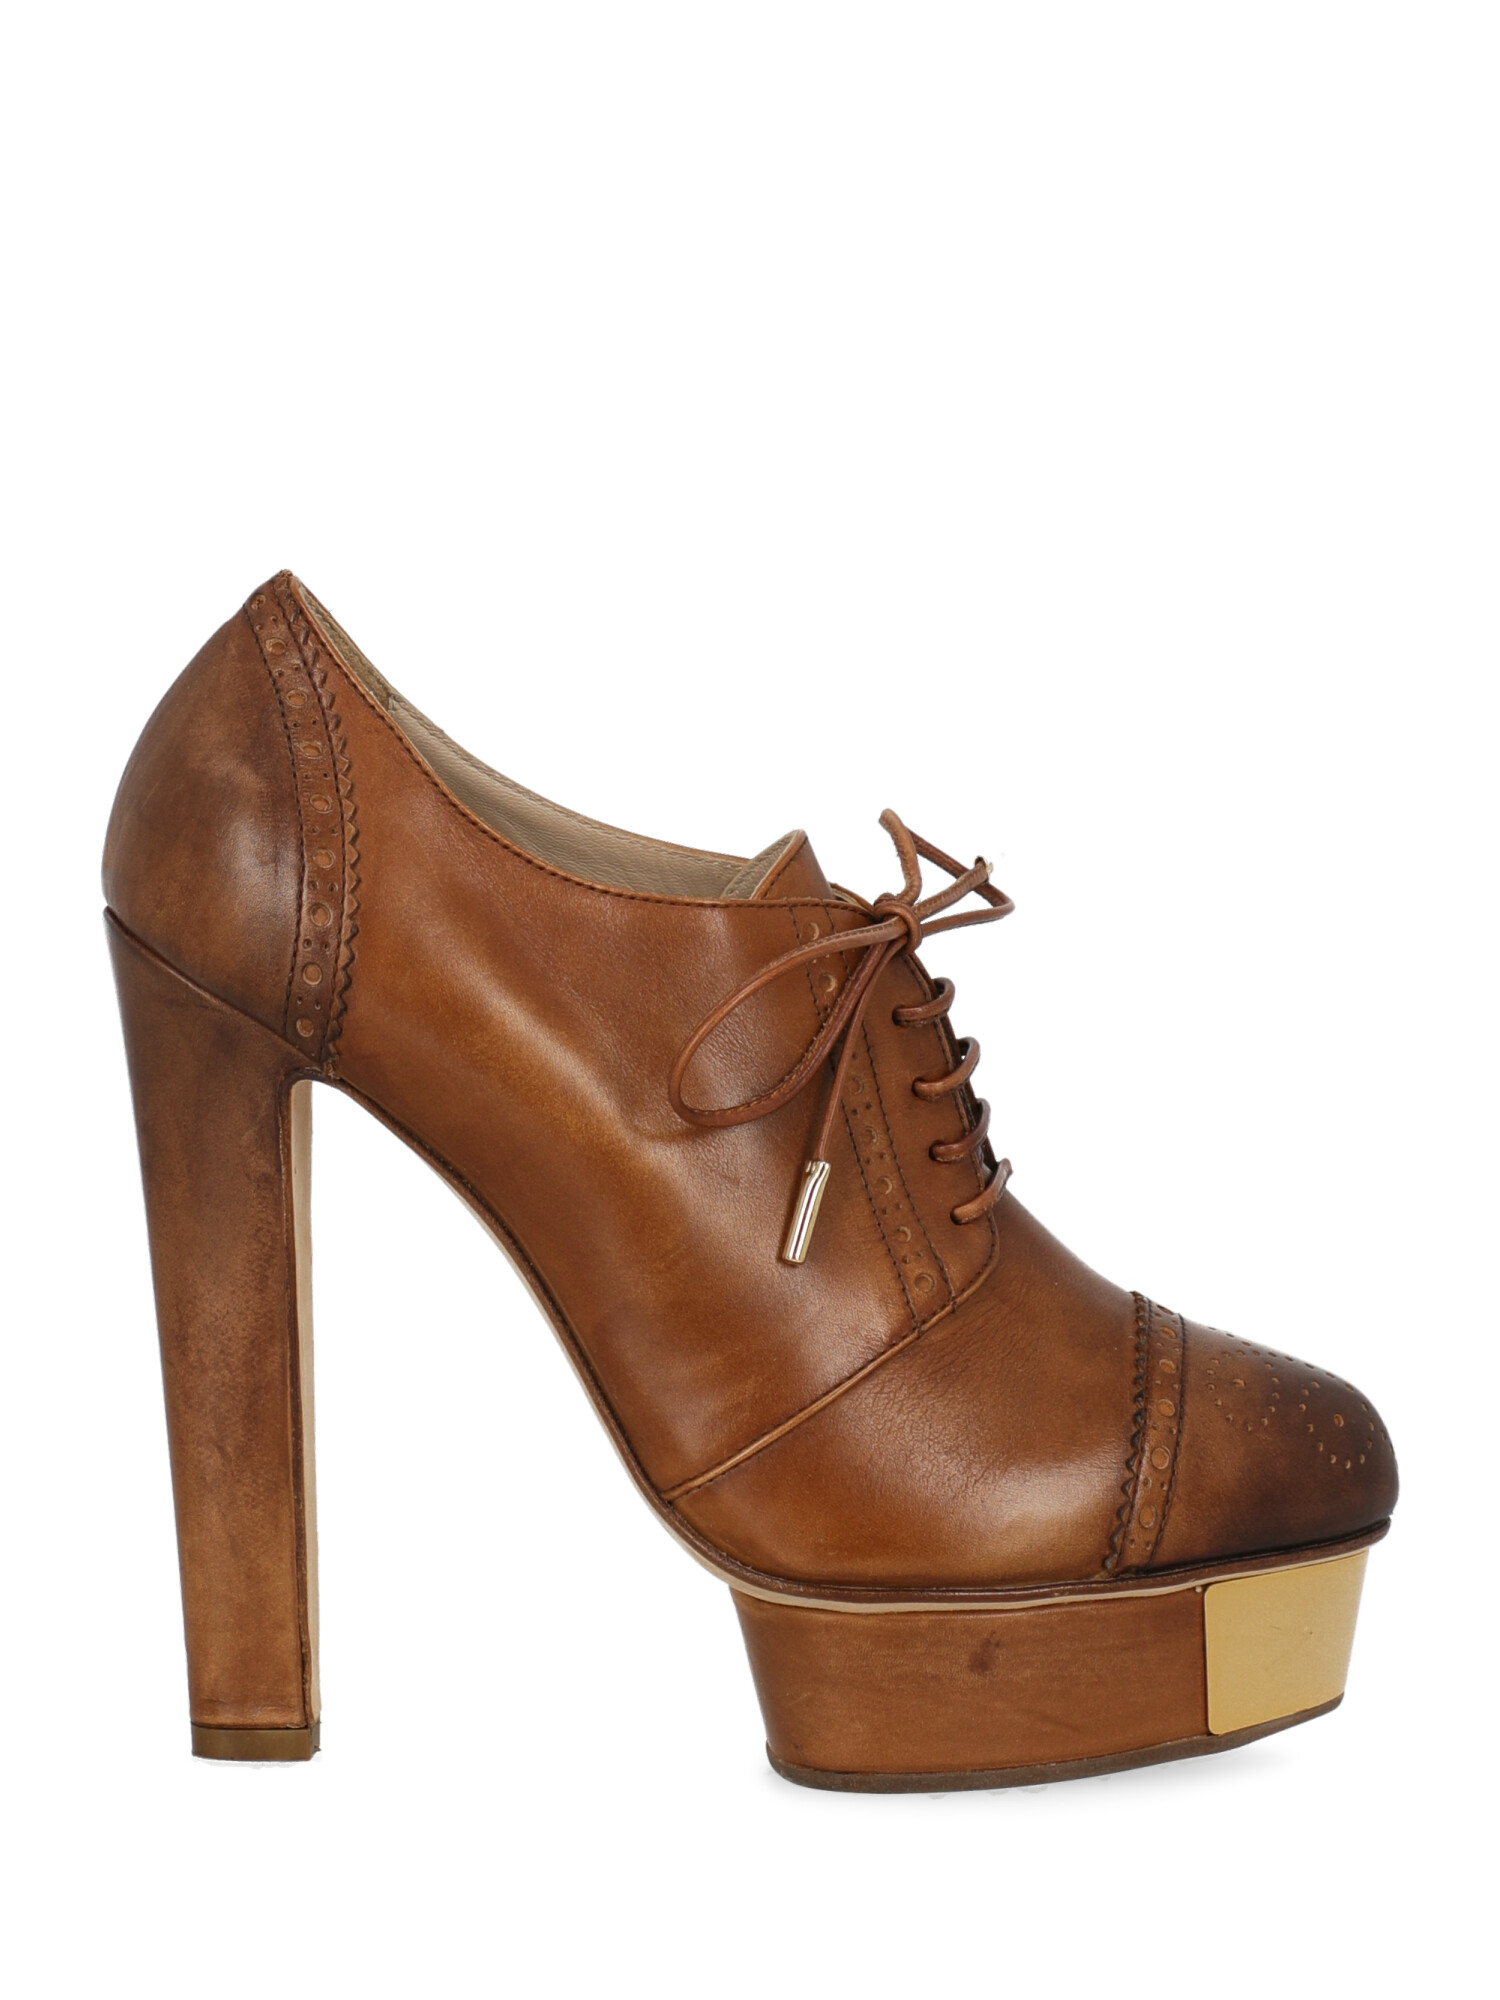 Pre-owned Le Silla Shoe In Camel Color